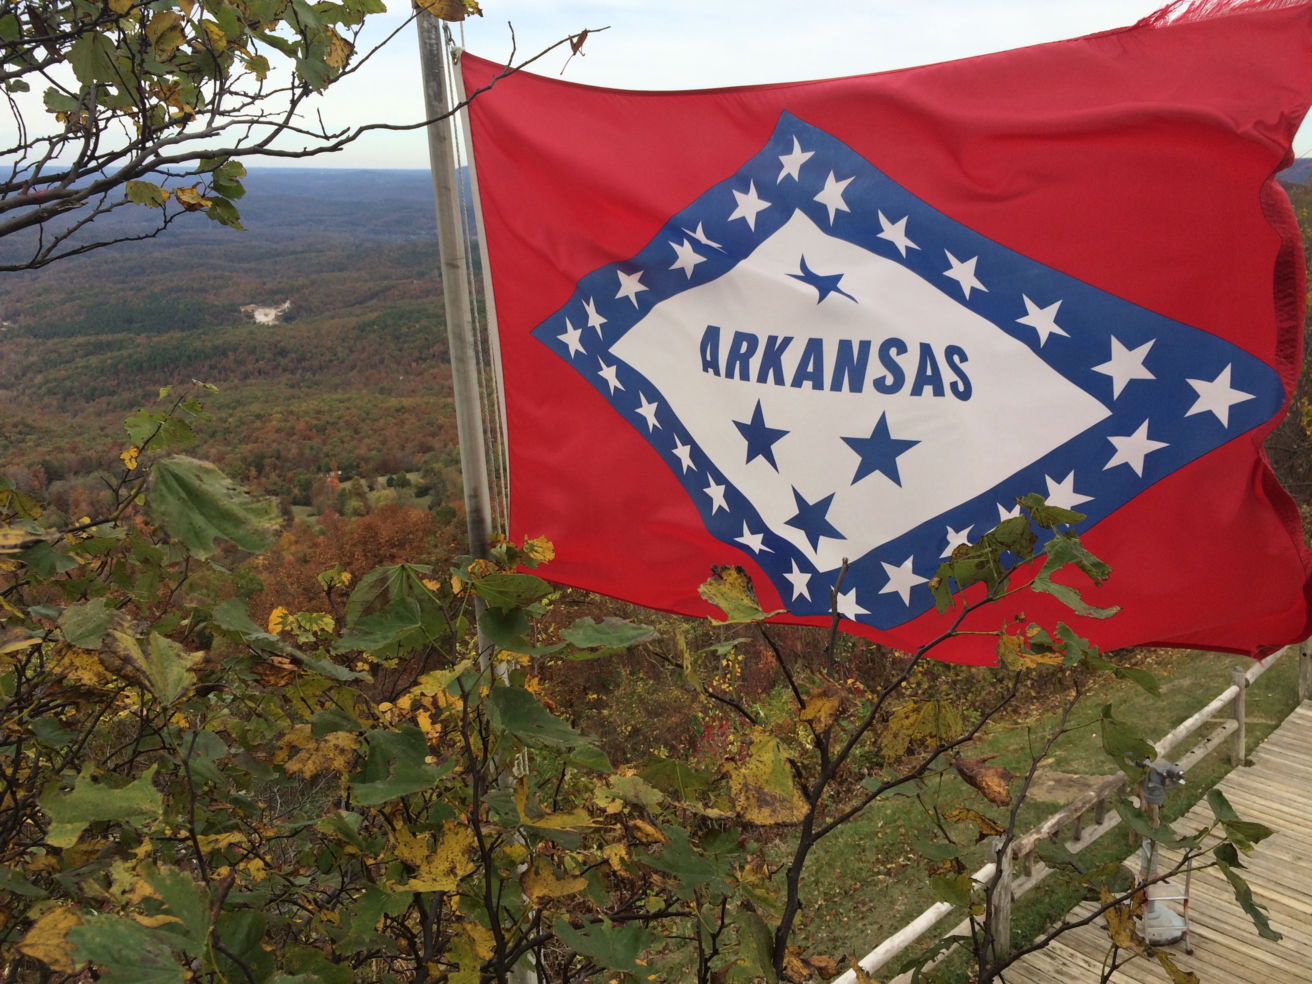 I'm very proud to call Arkansas my home state. It's is absolutely beautiful. I can leave my home and travel short distances in any direction to find an area to enjoy and explore. State Parks, Lakes and attractions are abundant here.